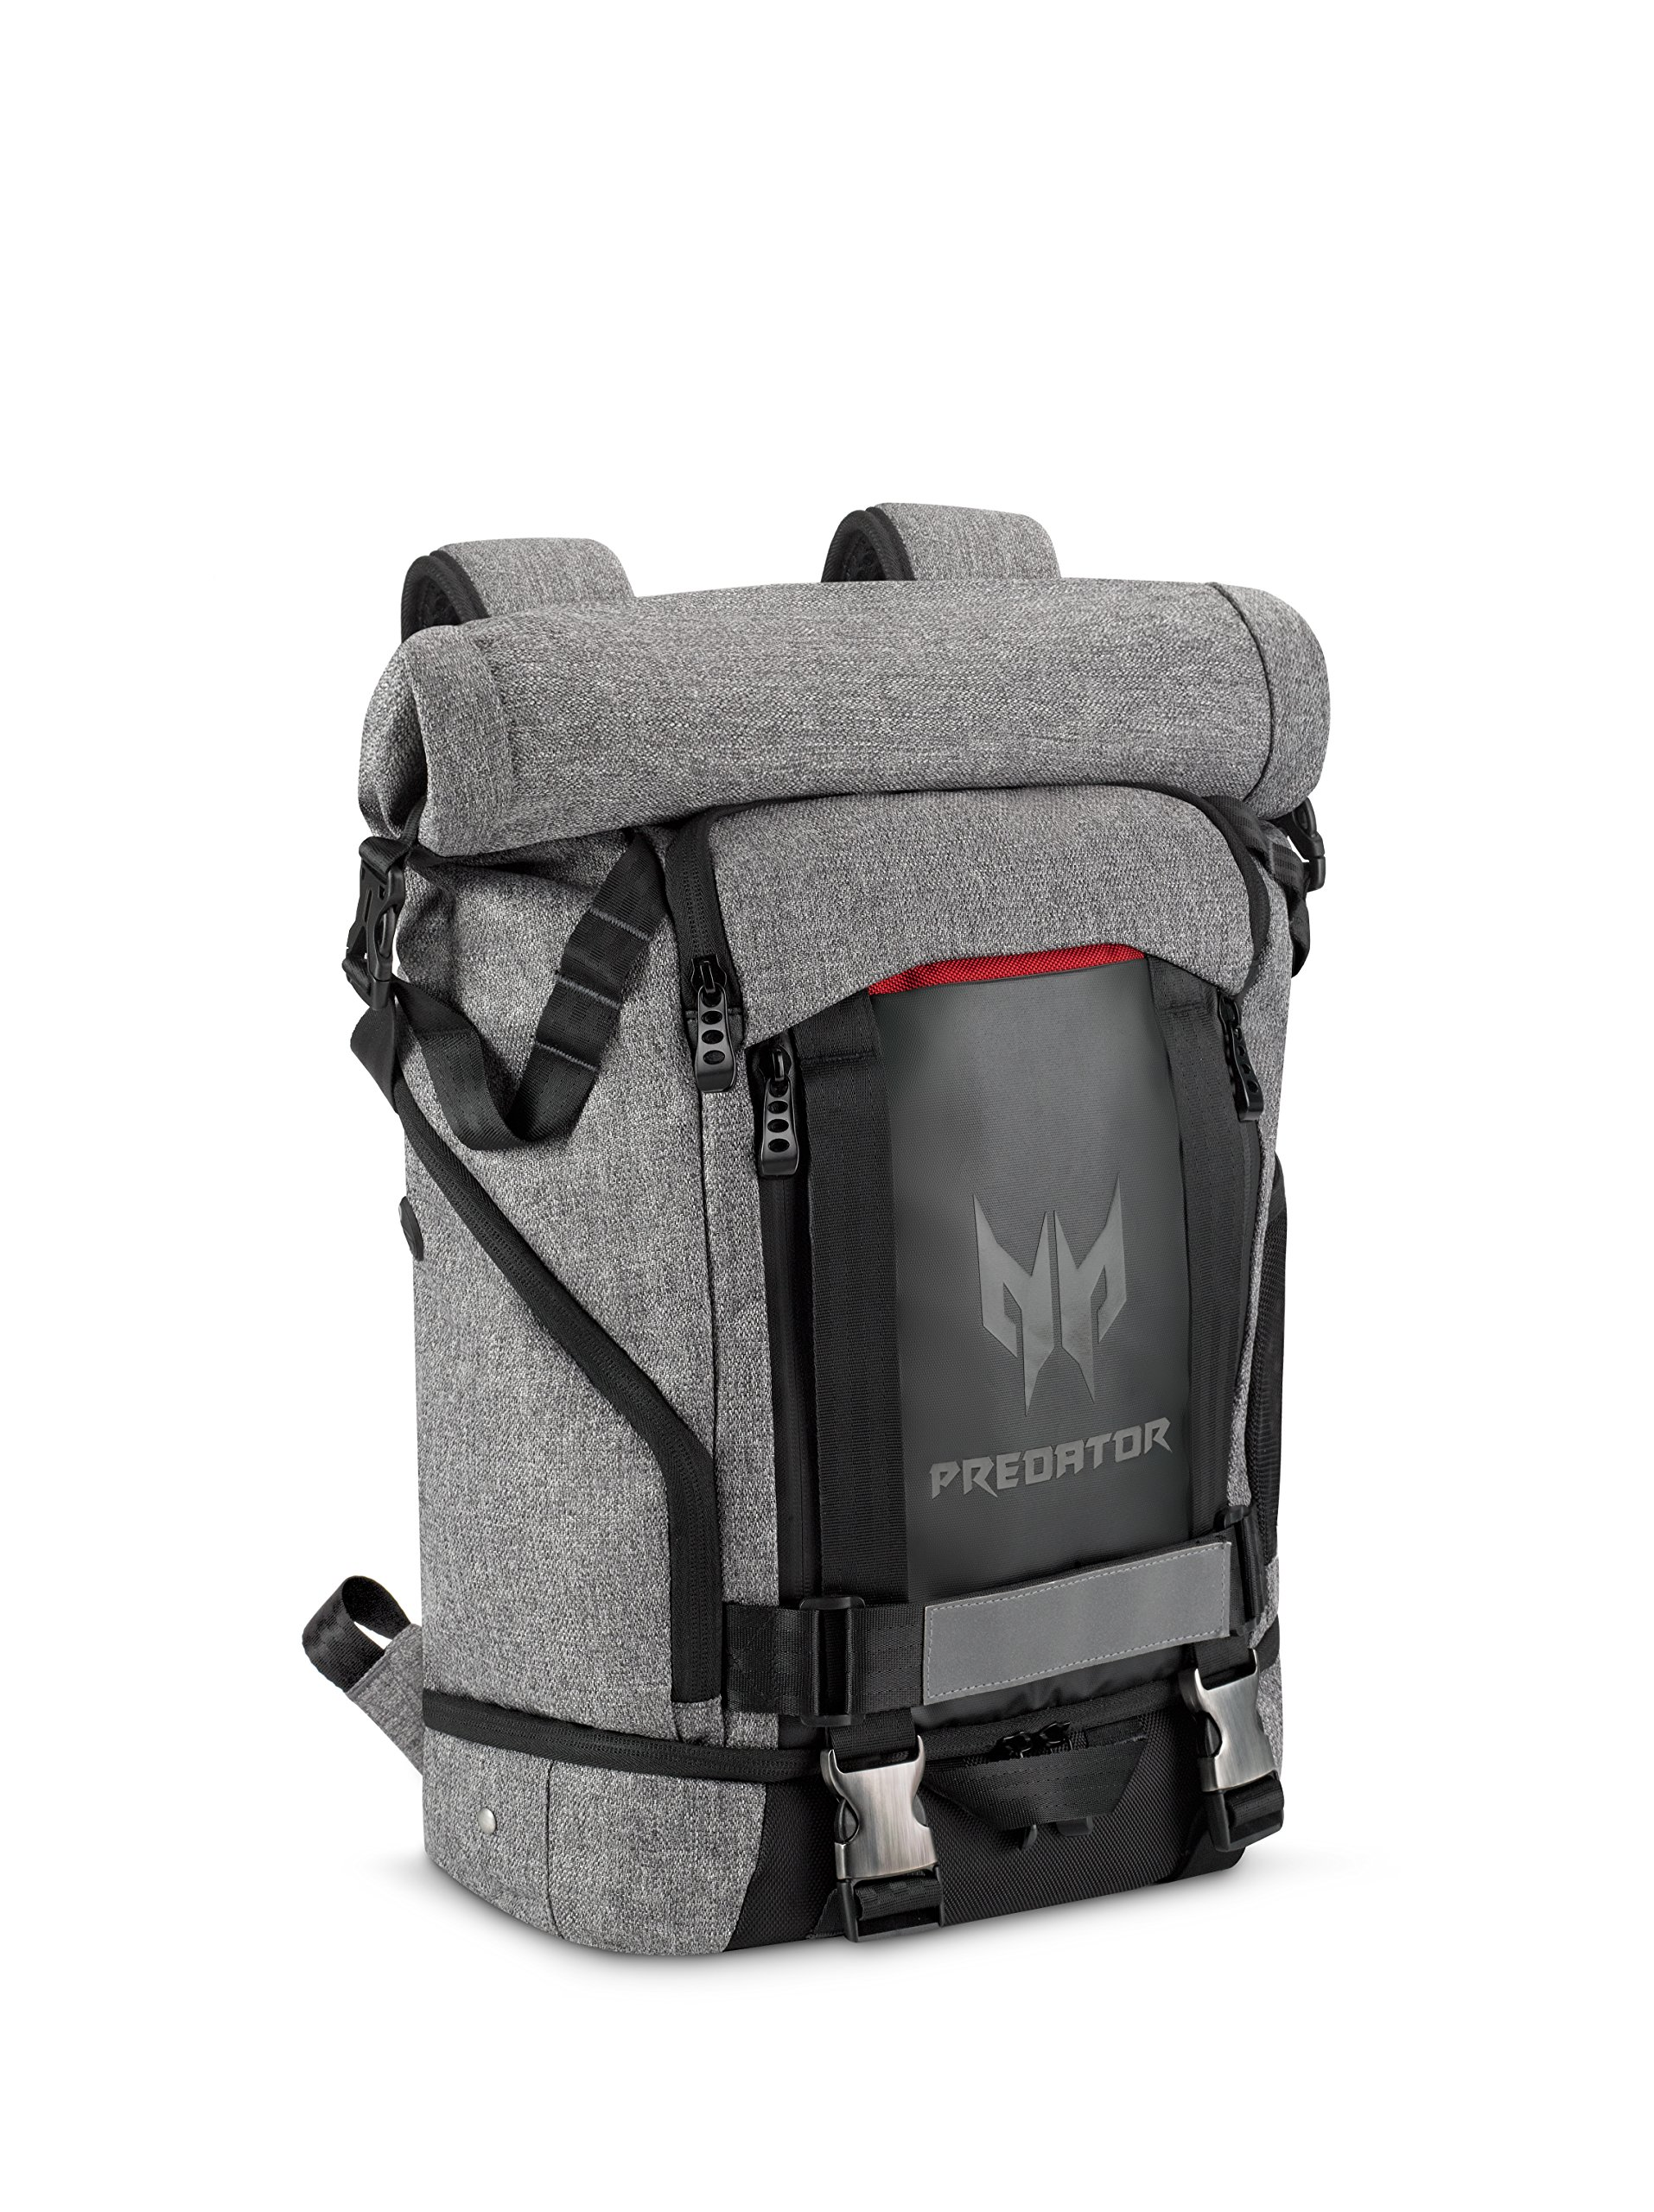 "Acer Predator Gaming Rolltop Backpack 15.6"" for all Gaming Laptops – Expandable space up to 35.5L capacity, Travel backpack, organized pockets for all gears"